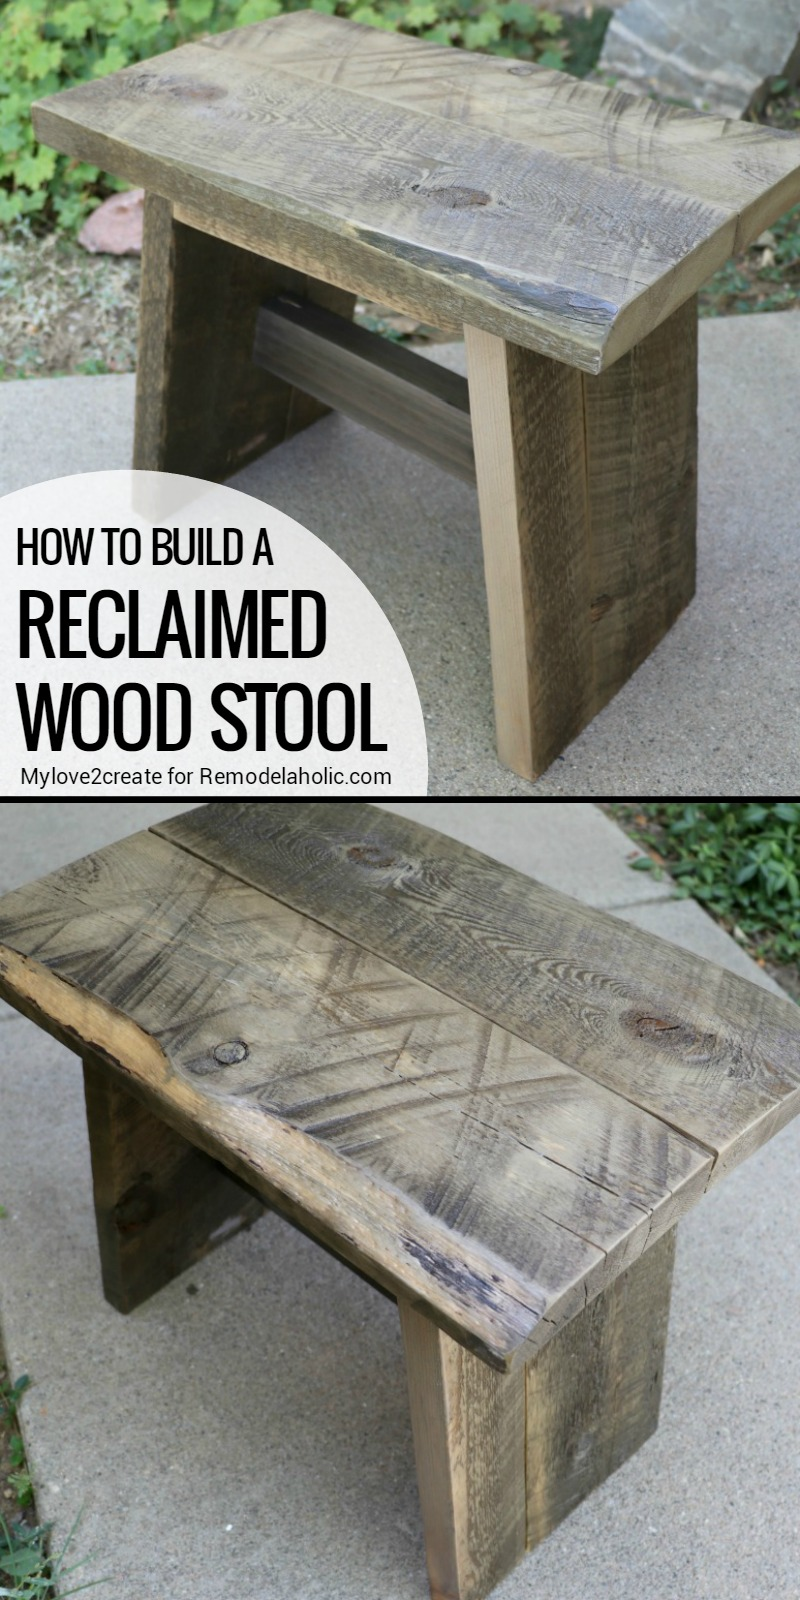 Remodelaholic diy reclaimed wood stool for How to move a building